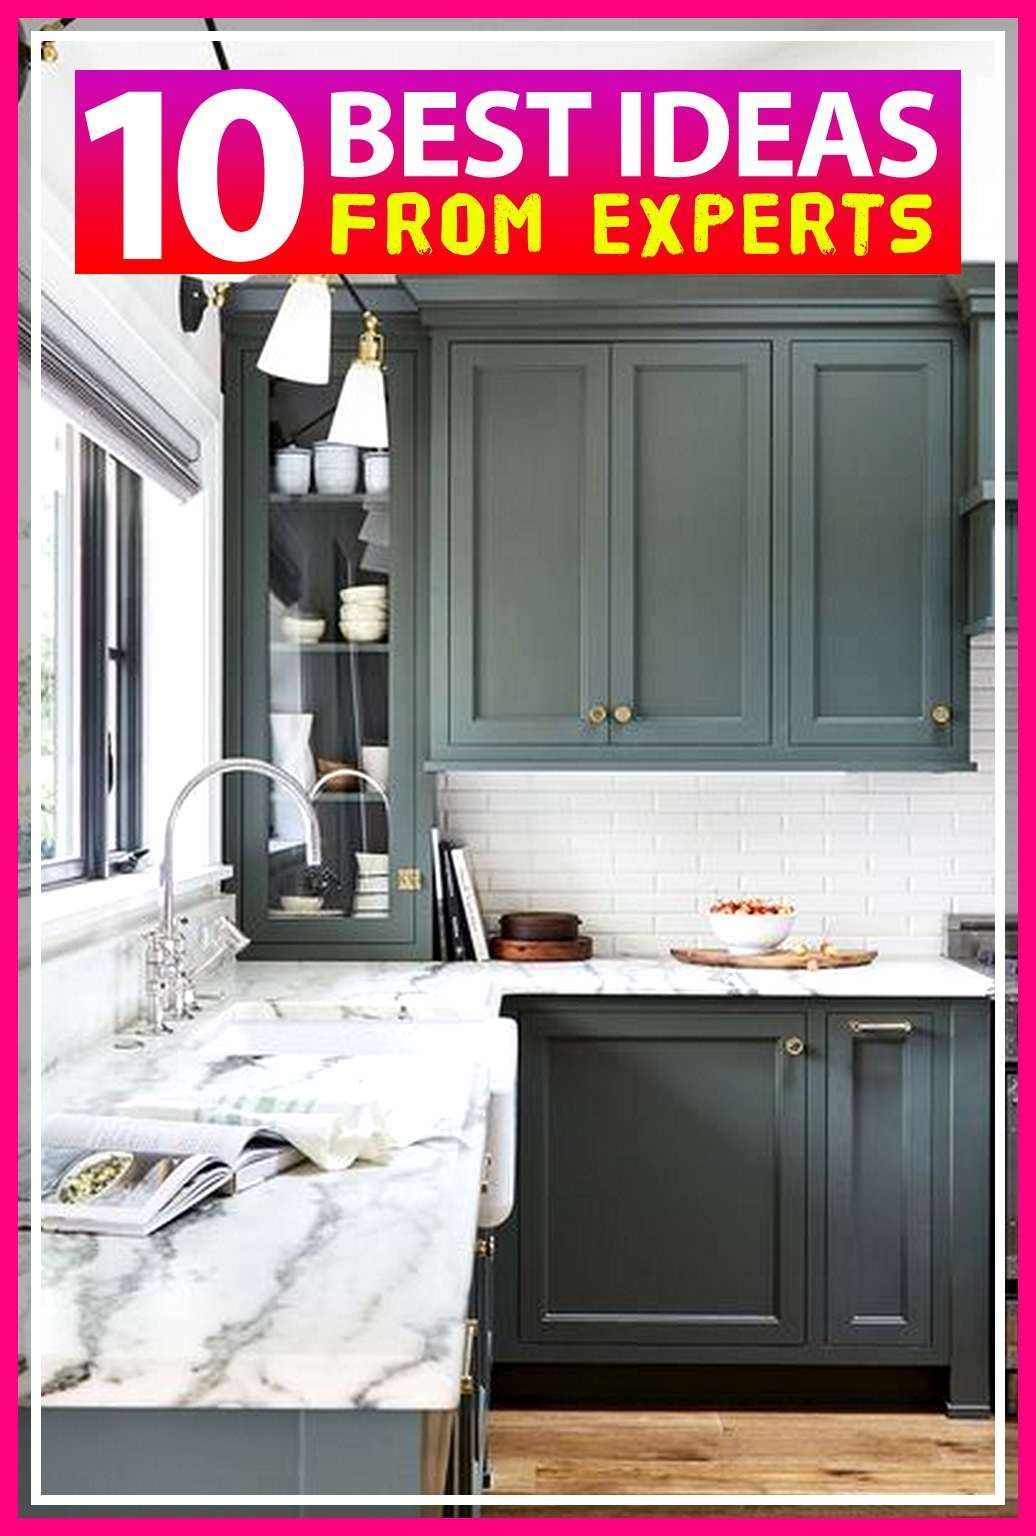 10 Amazing Paint Kitchen Cabinets Before And After Grey Furniture Thi In 2020 Painting Kitchen Cabinets Diy Kitchen Cabinets Painting Kitchen Cabinets Grey And White